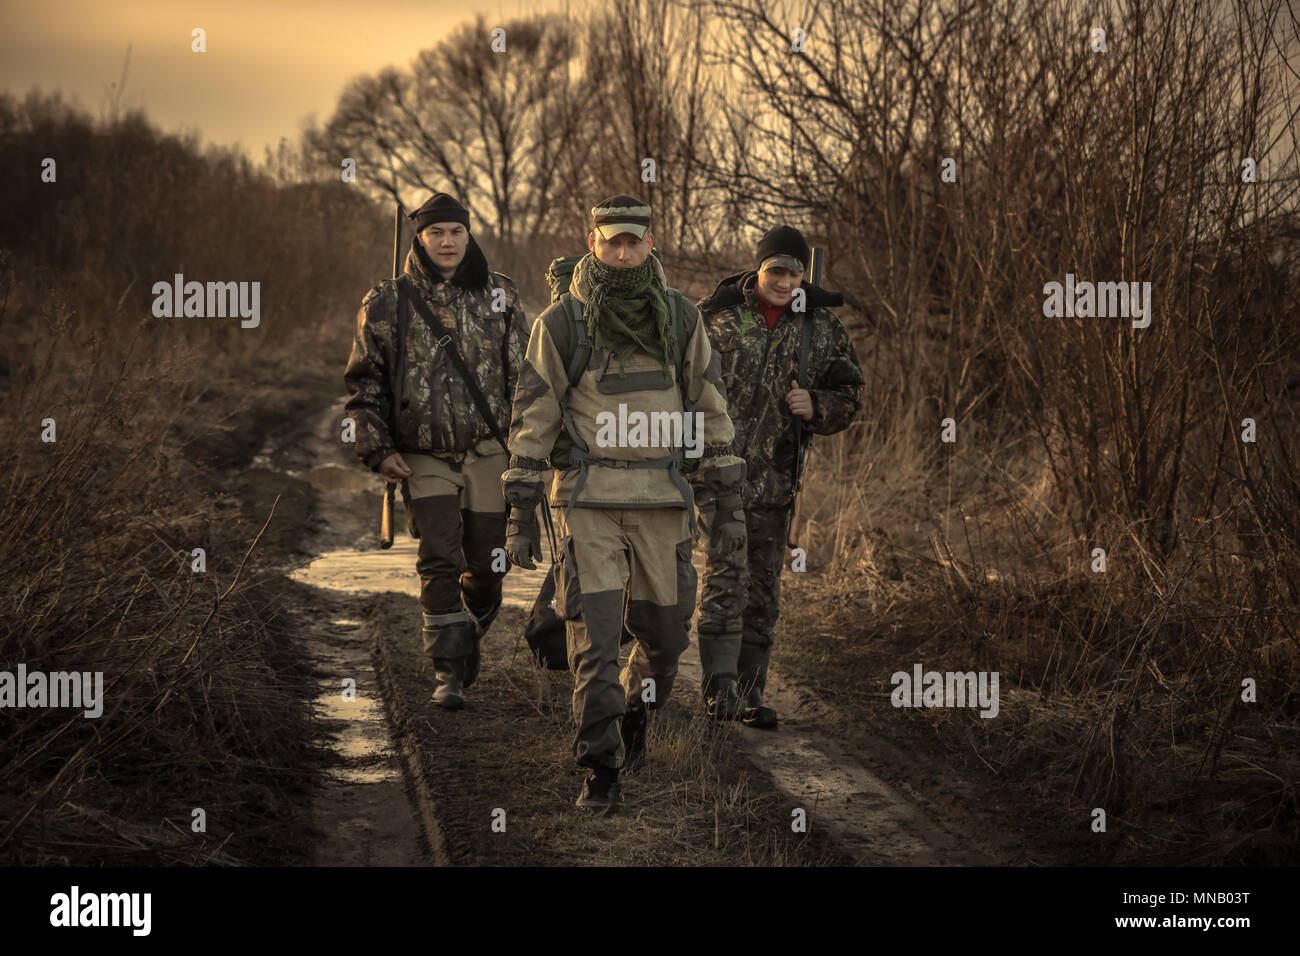 Group of men hunters with hunting equipment going on rural road hunting season sunset - Stock Image